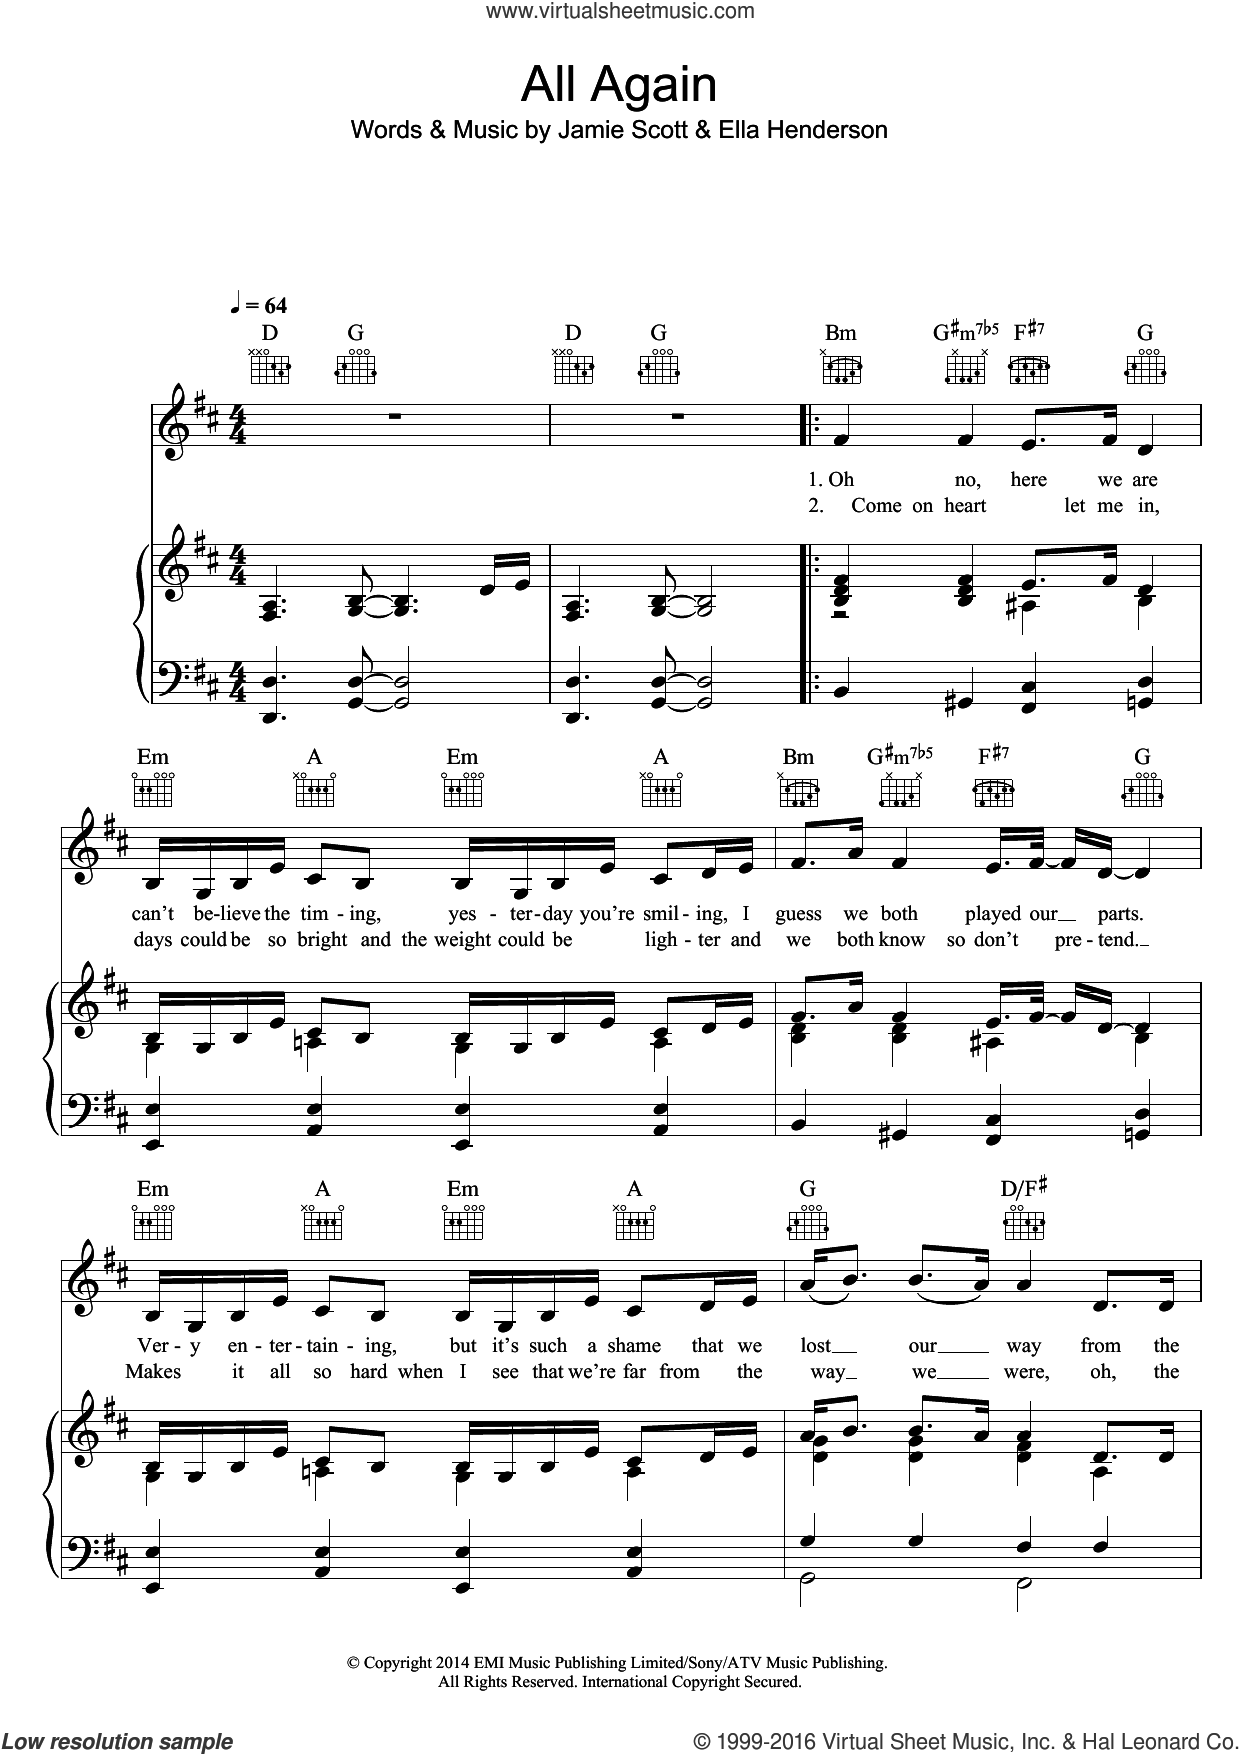 All Again sheet music for voice, piano or guitar by Ella Henderson and Jamie Scott, intermediate skill level